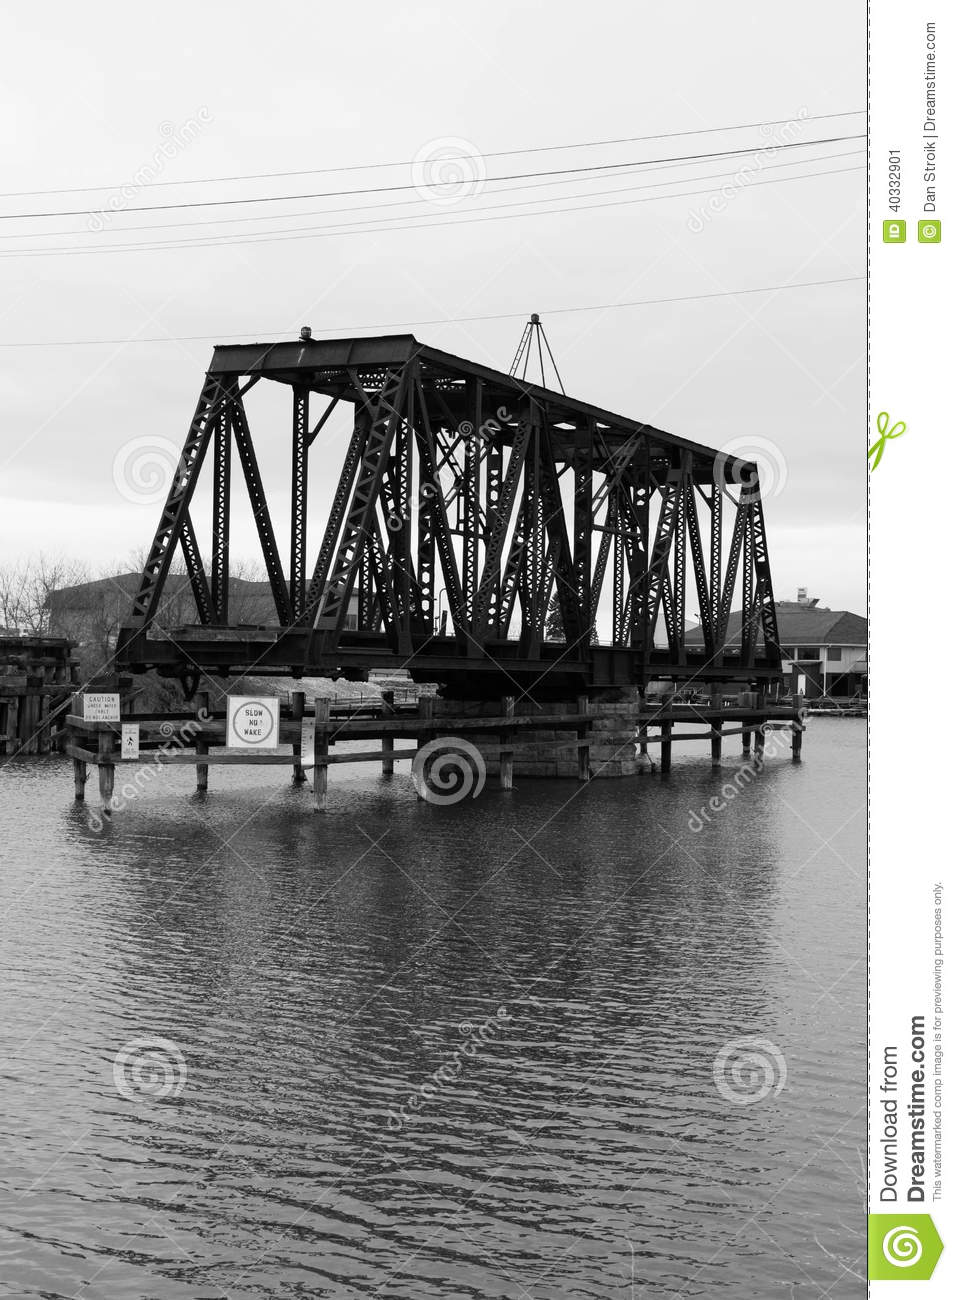 Download Railroad bridge stock image. Image of rivers, down, draw - 40332901